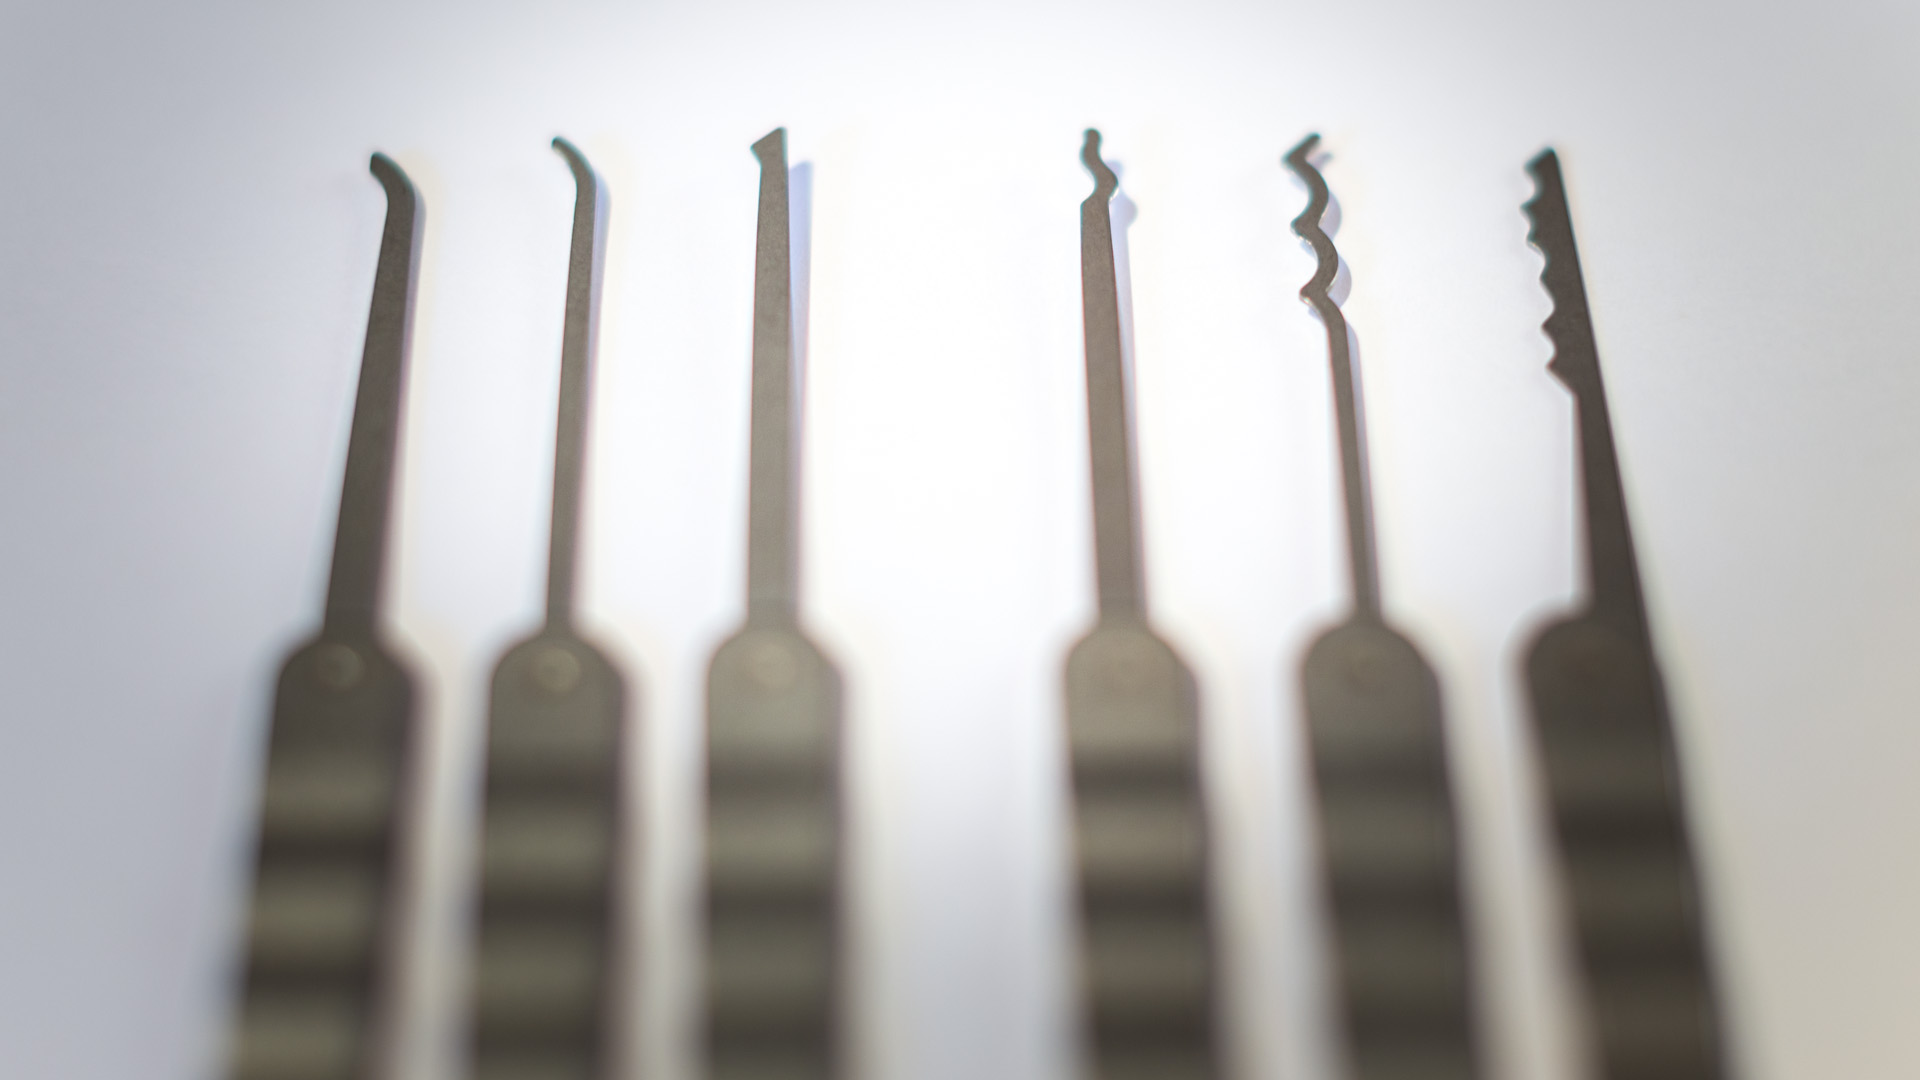 Lock Picking Set from Paperclips